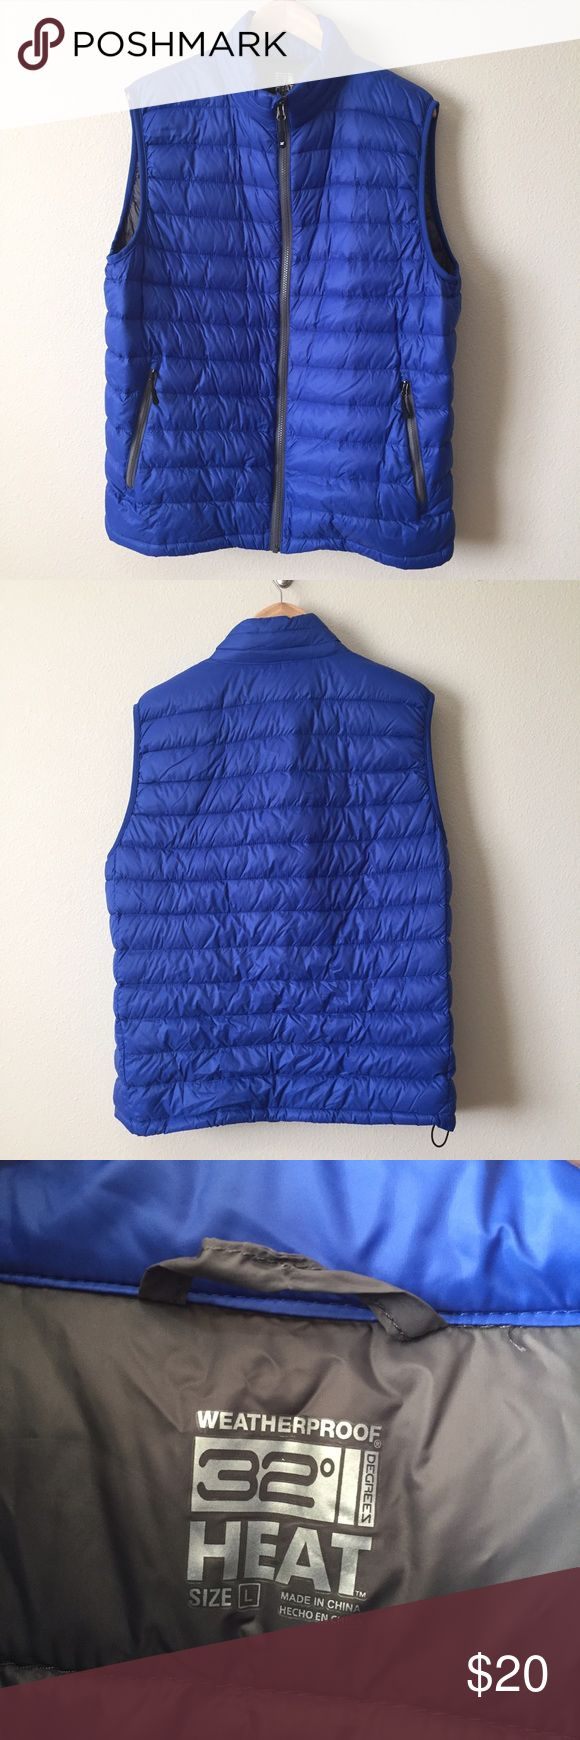 Puffer Down Vest >Puffer down vest >Blue >Size L >EUC: Excellent Used Condition >90% down fill >Drawstring waist for fit >Zippered pockets  🚭Smoke free house. 🐶Pet free house. 🚫No trades.  Make me an offer I can't refuse! 💋 BUNDLE to save on shipping! 📦 Jackets & Coats Vests